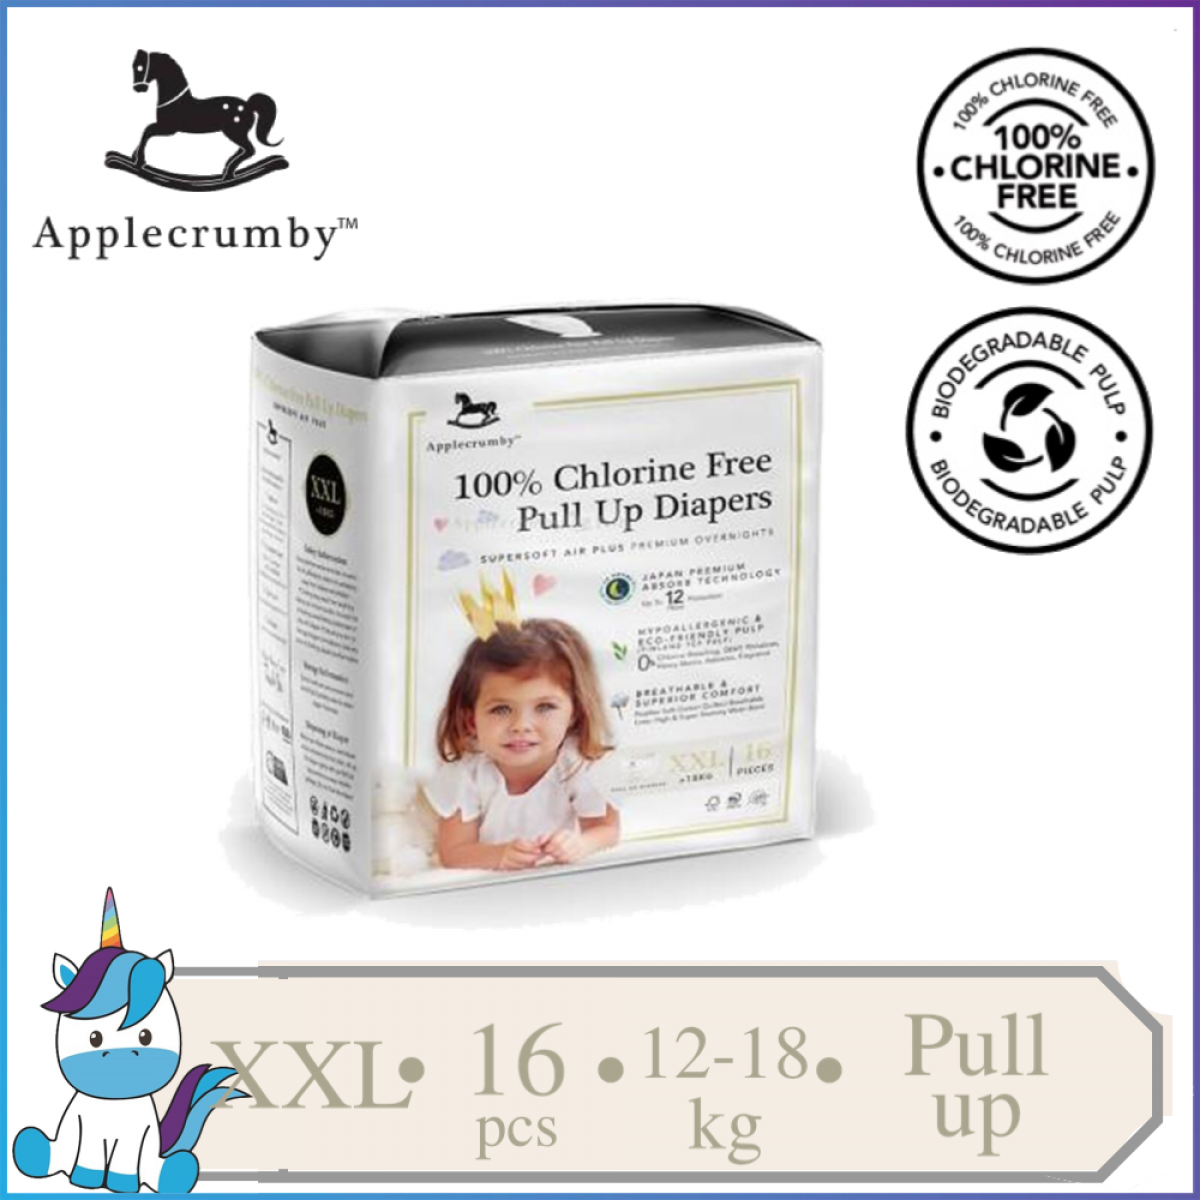 ApplecrumbY Chlorine Free Premium Baby Pull Ups Diapers Size XXL - 16 pieces (>18kg)